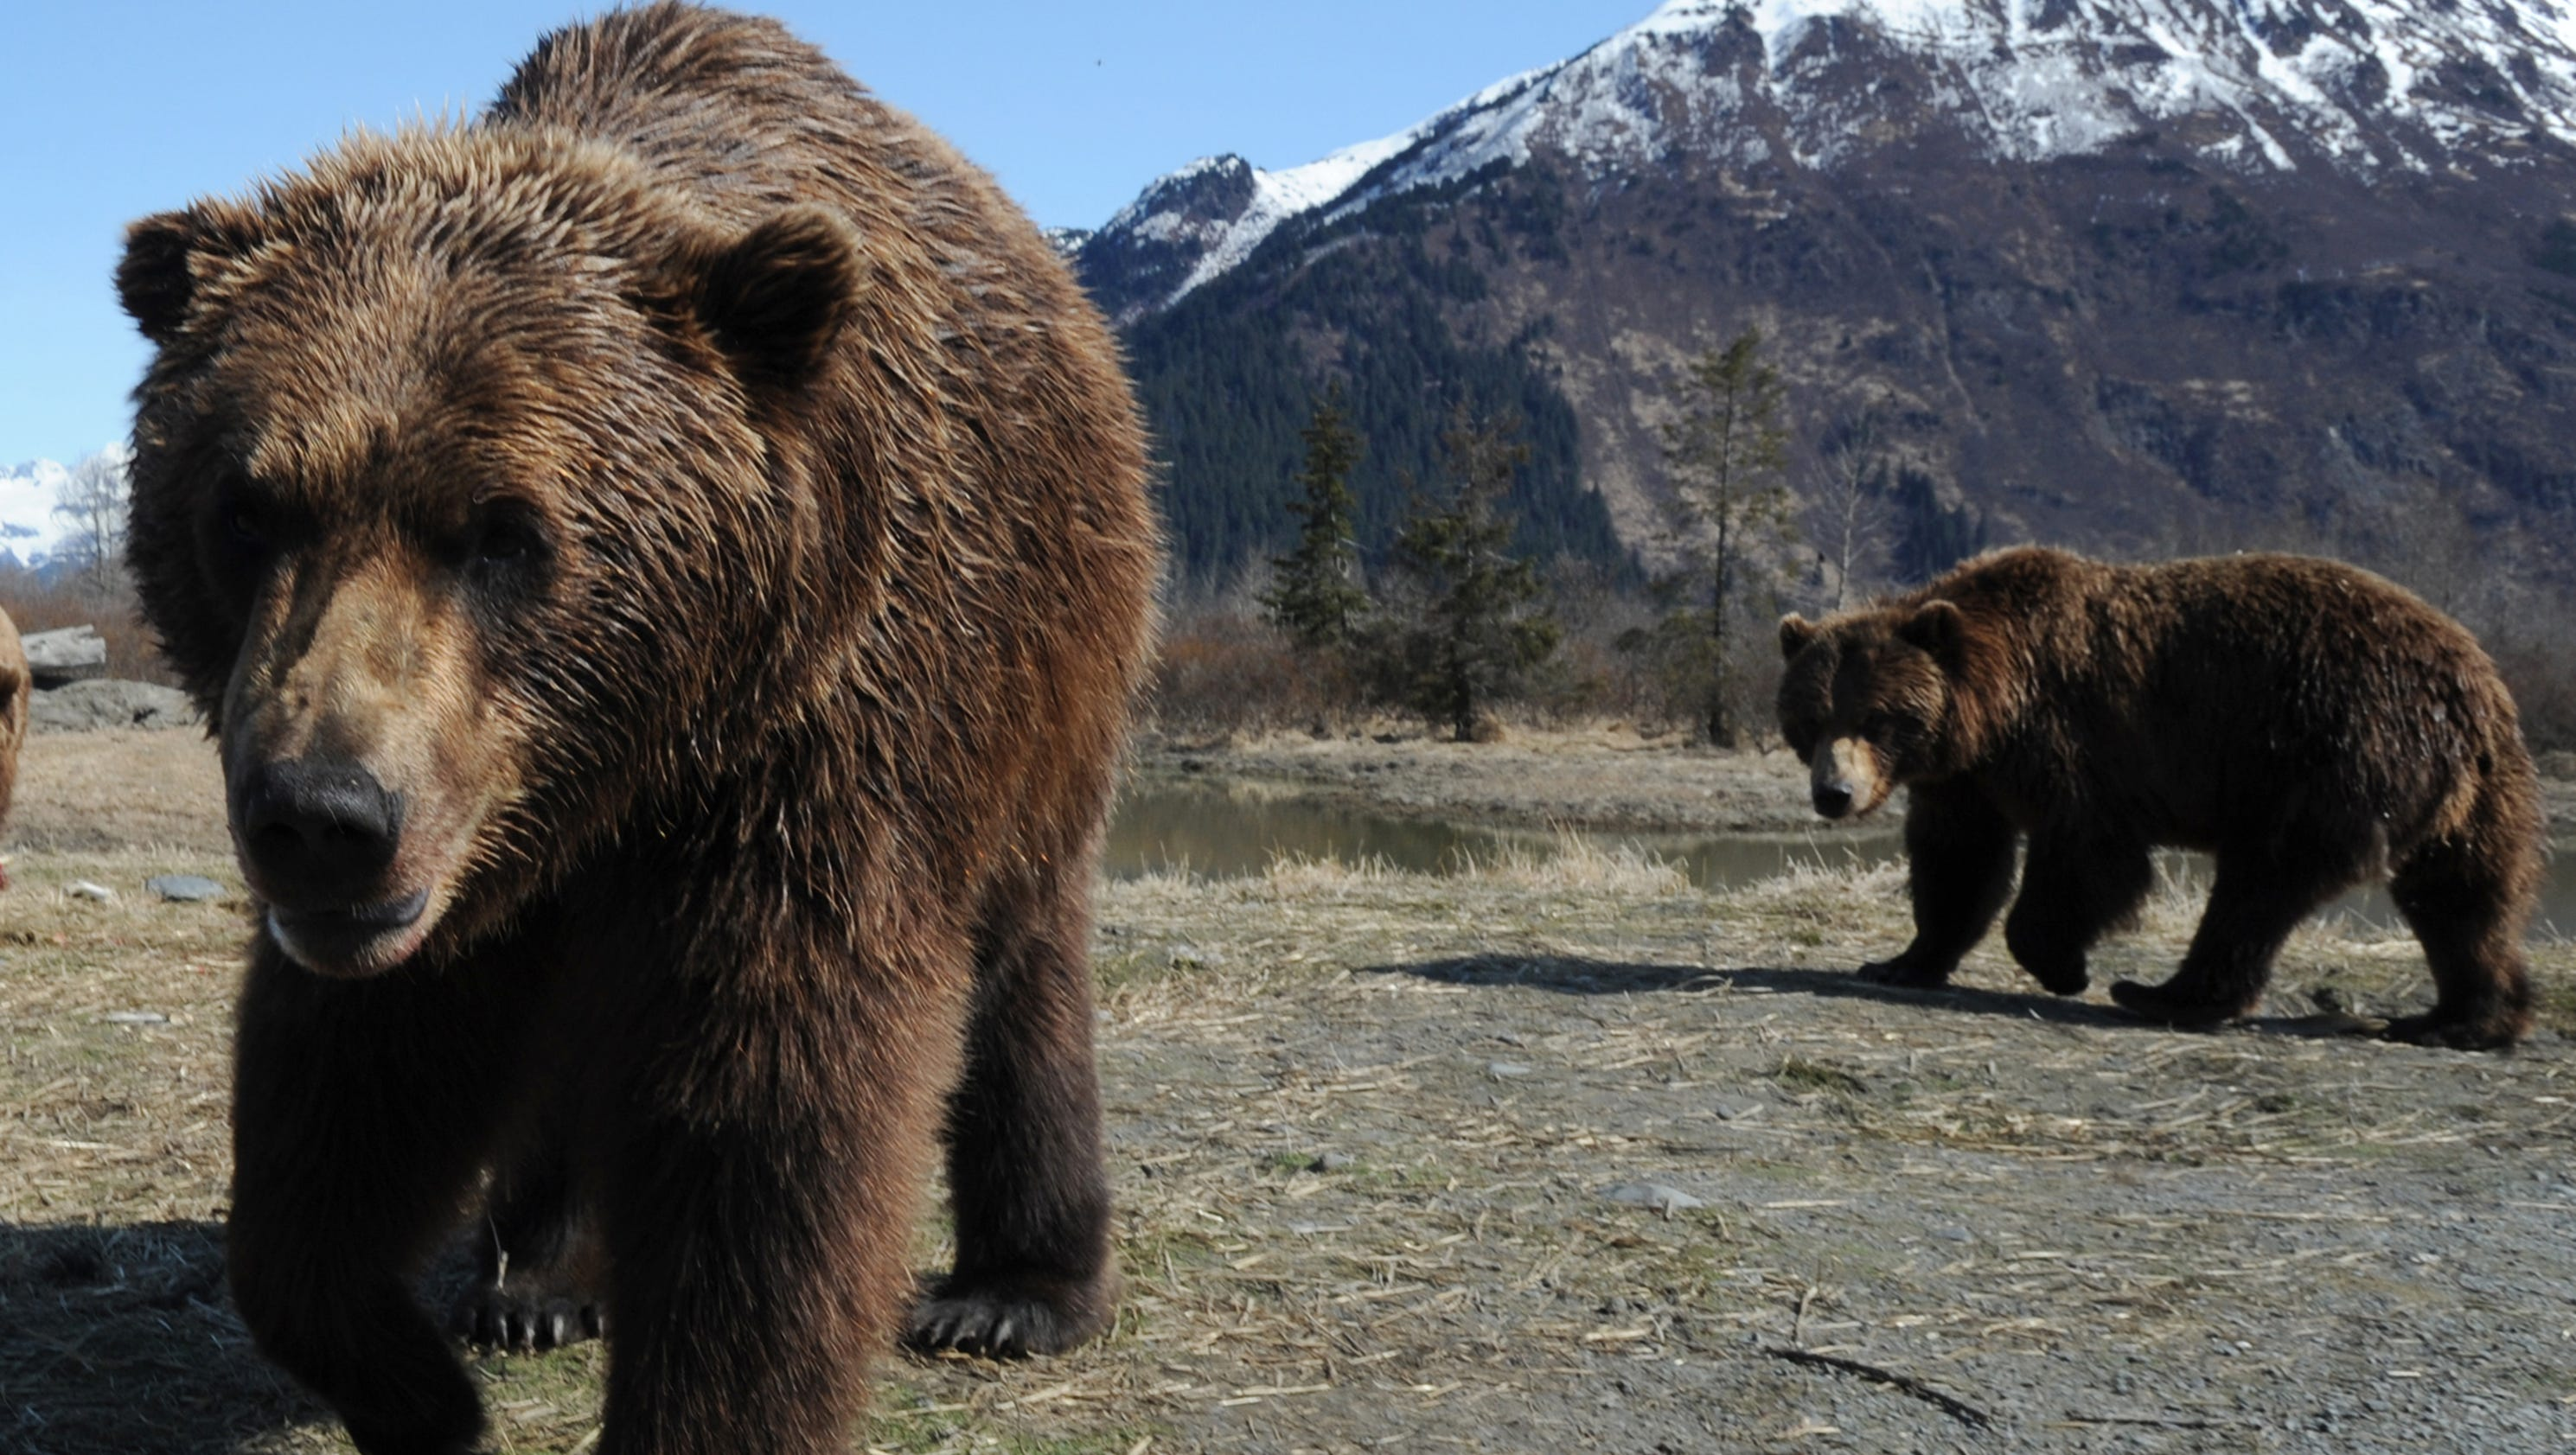 hunting show host charged with poaching in alaska